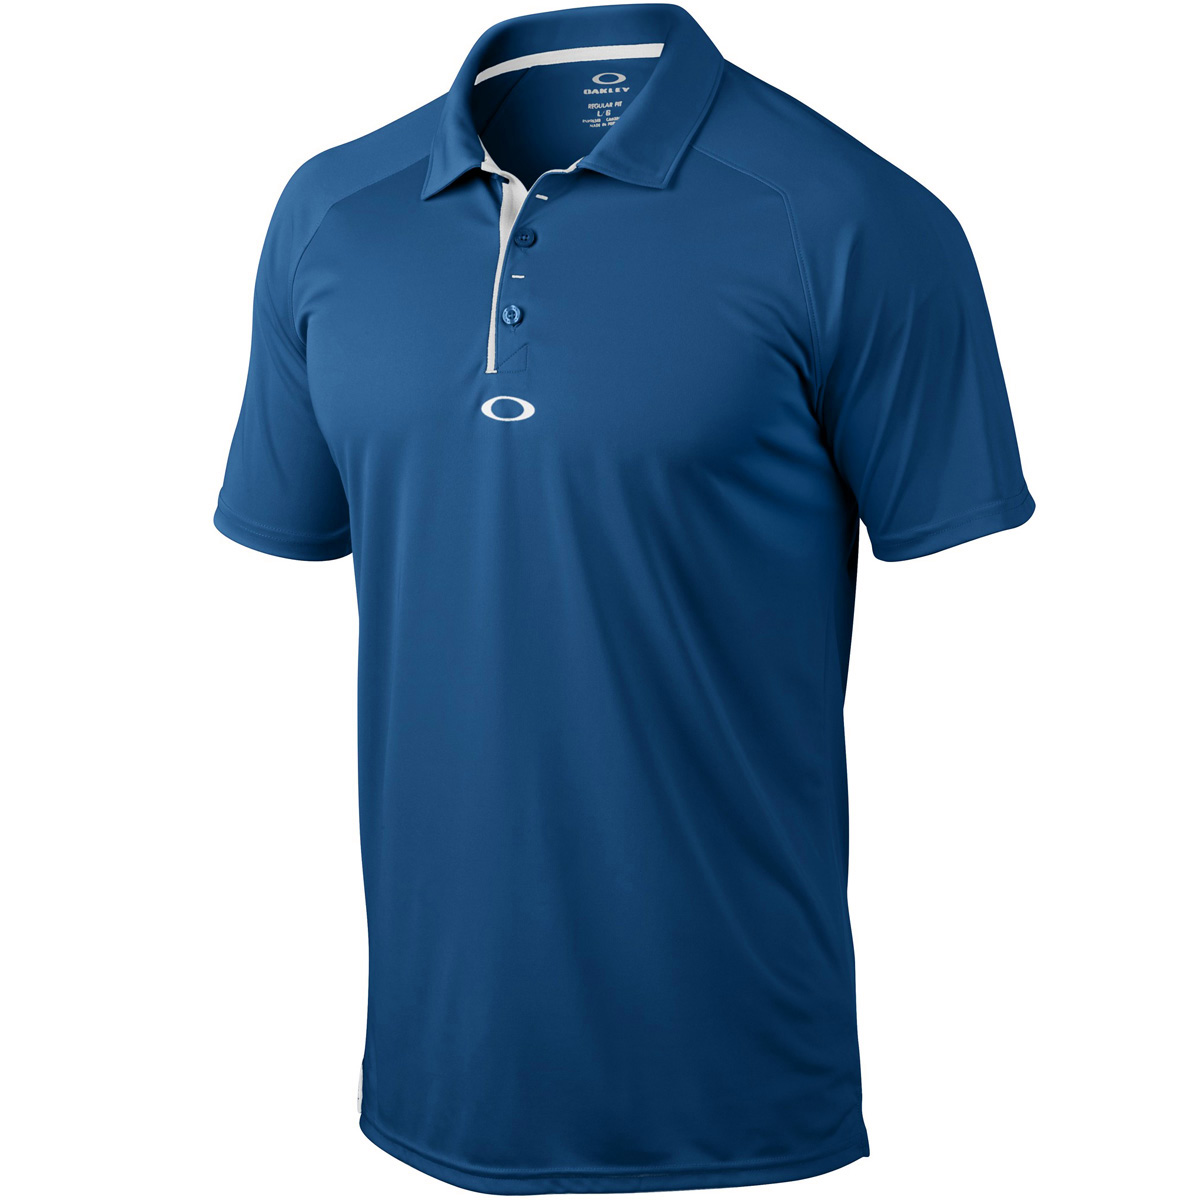 43 off rrp oakley golf mens short sleeve elemental 2 0 for Short sleeve mens dress shirts clearance